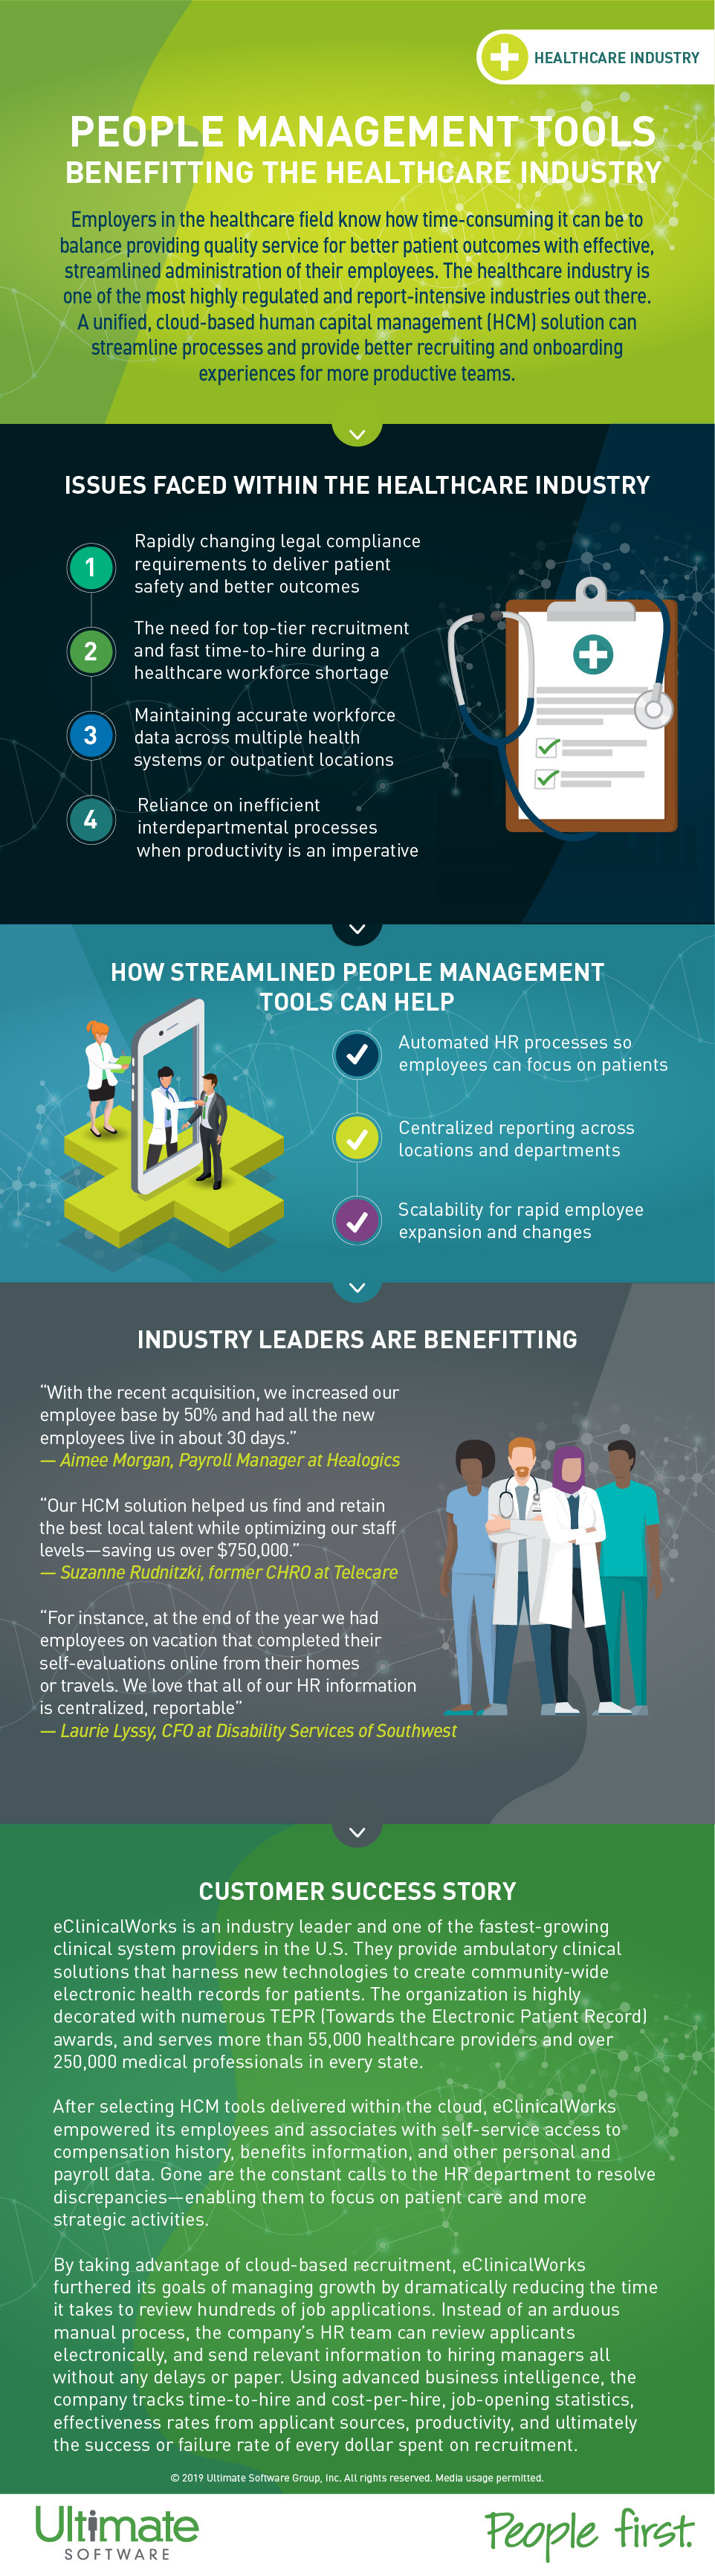 People Management Tools Benefitting the Healthcare Industry